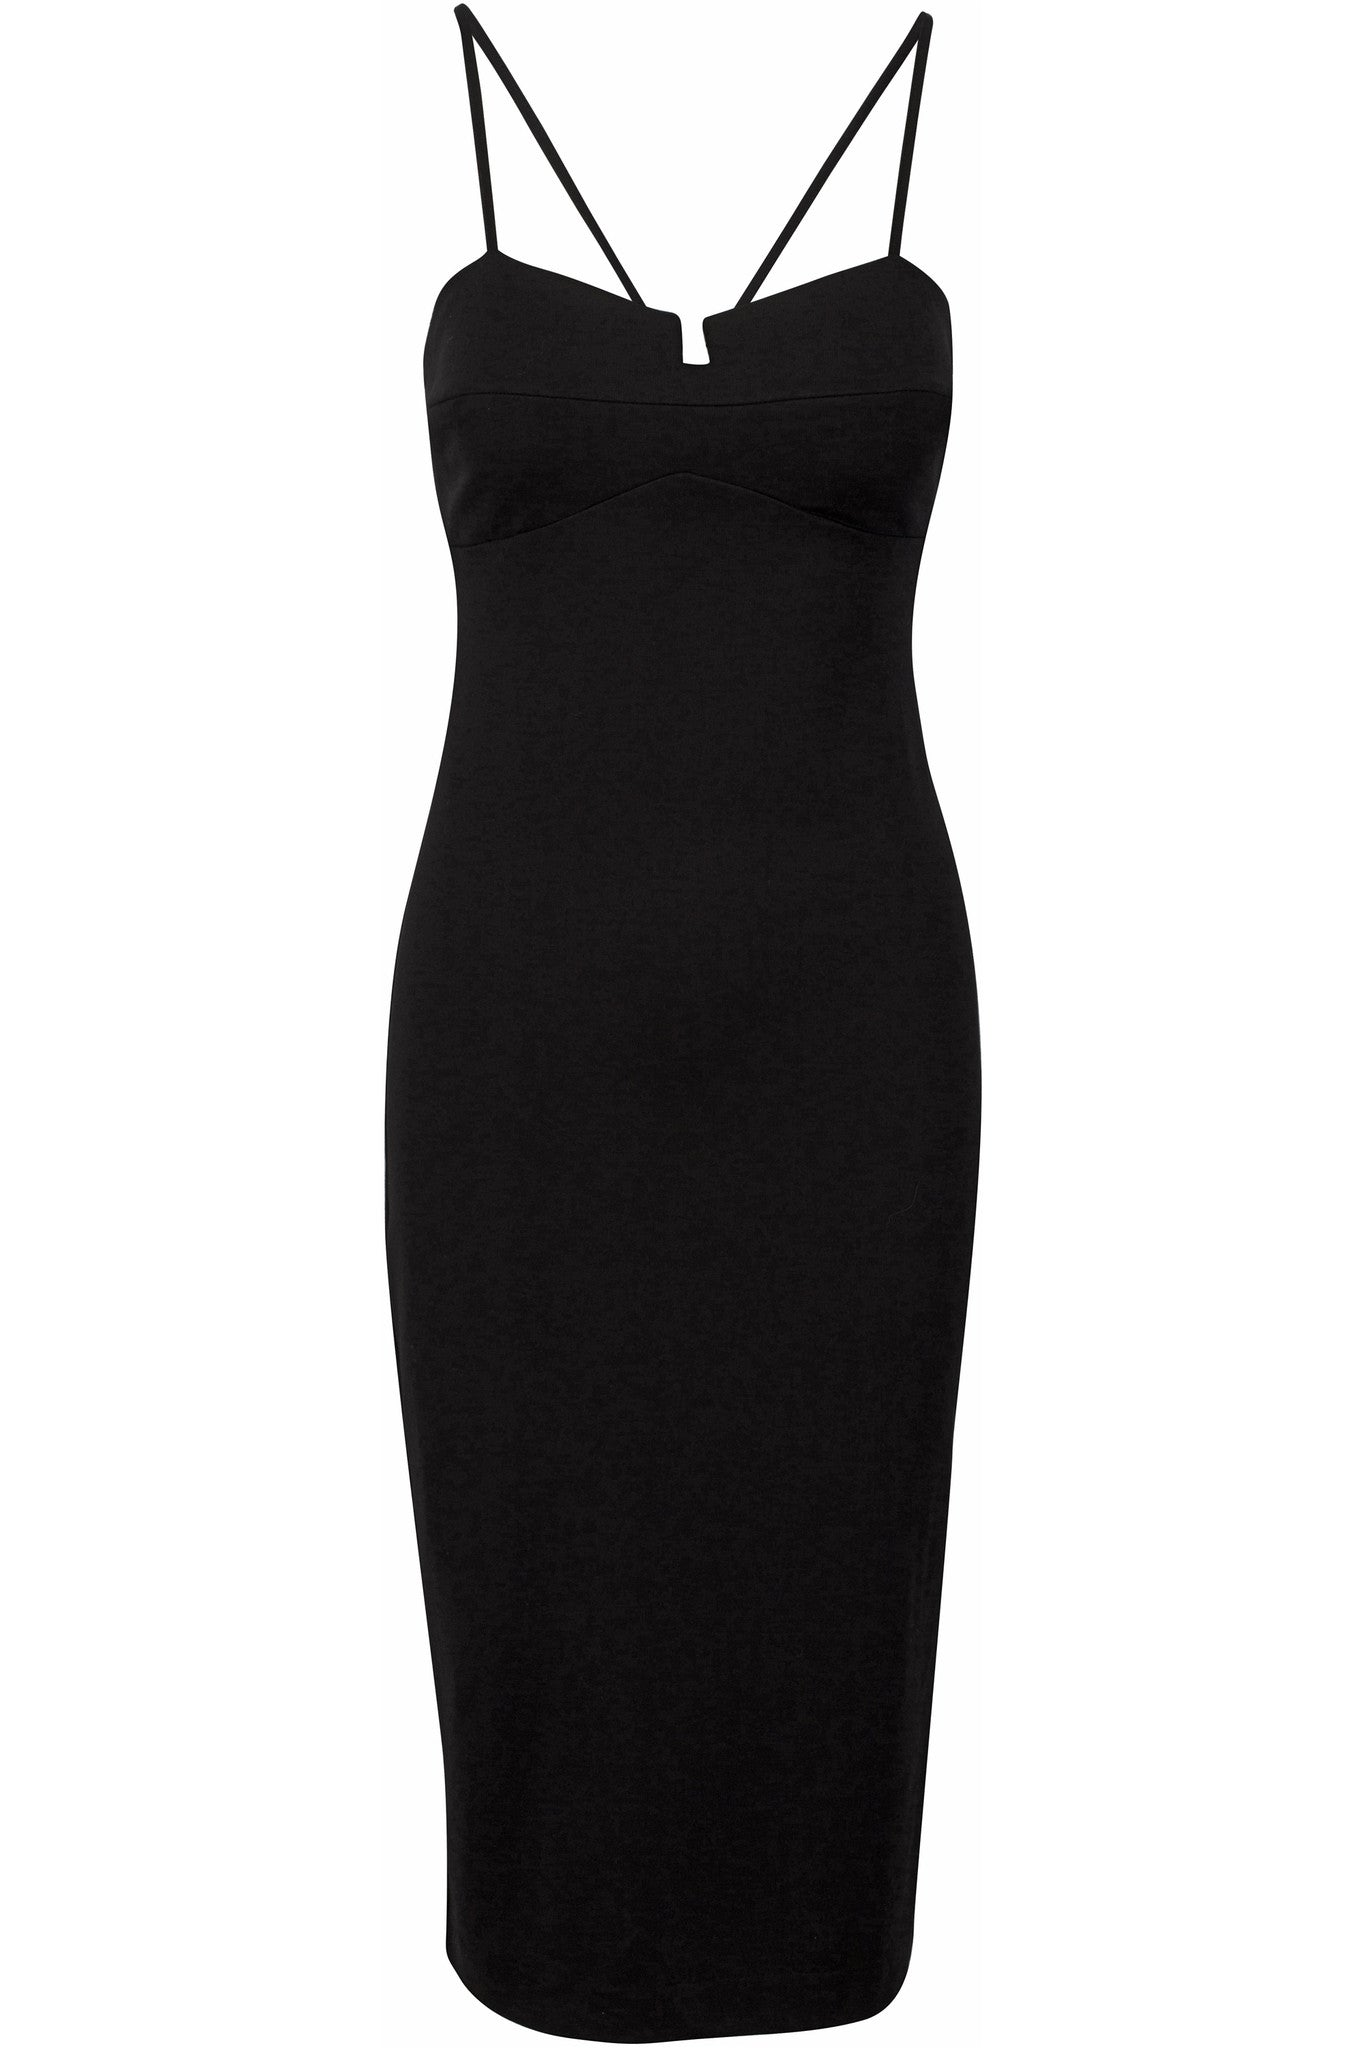 BRALETTE BODYCON DRESS